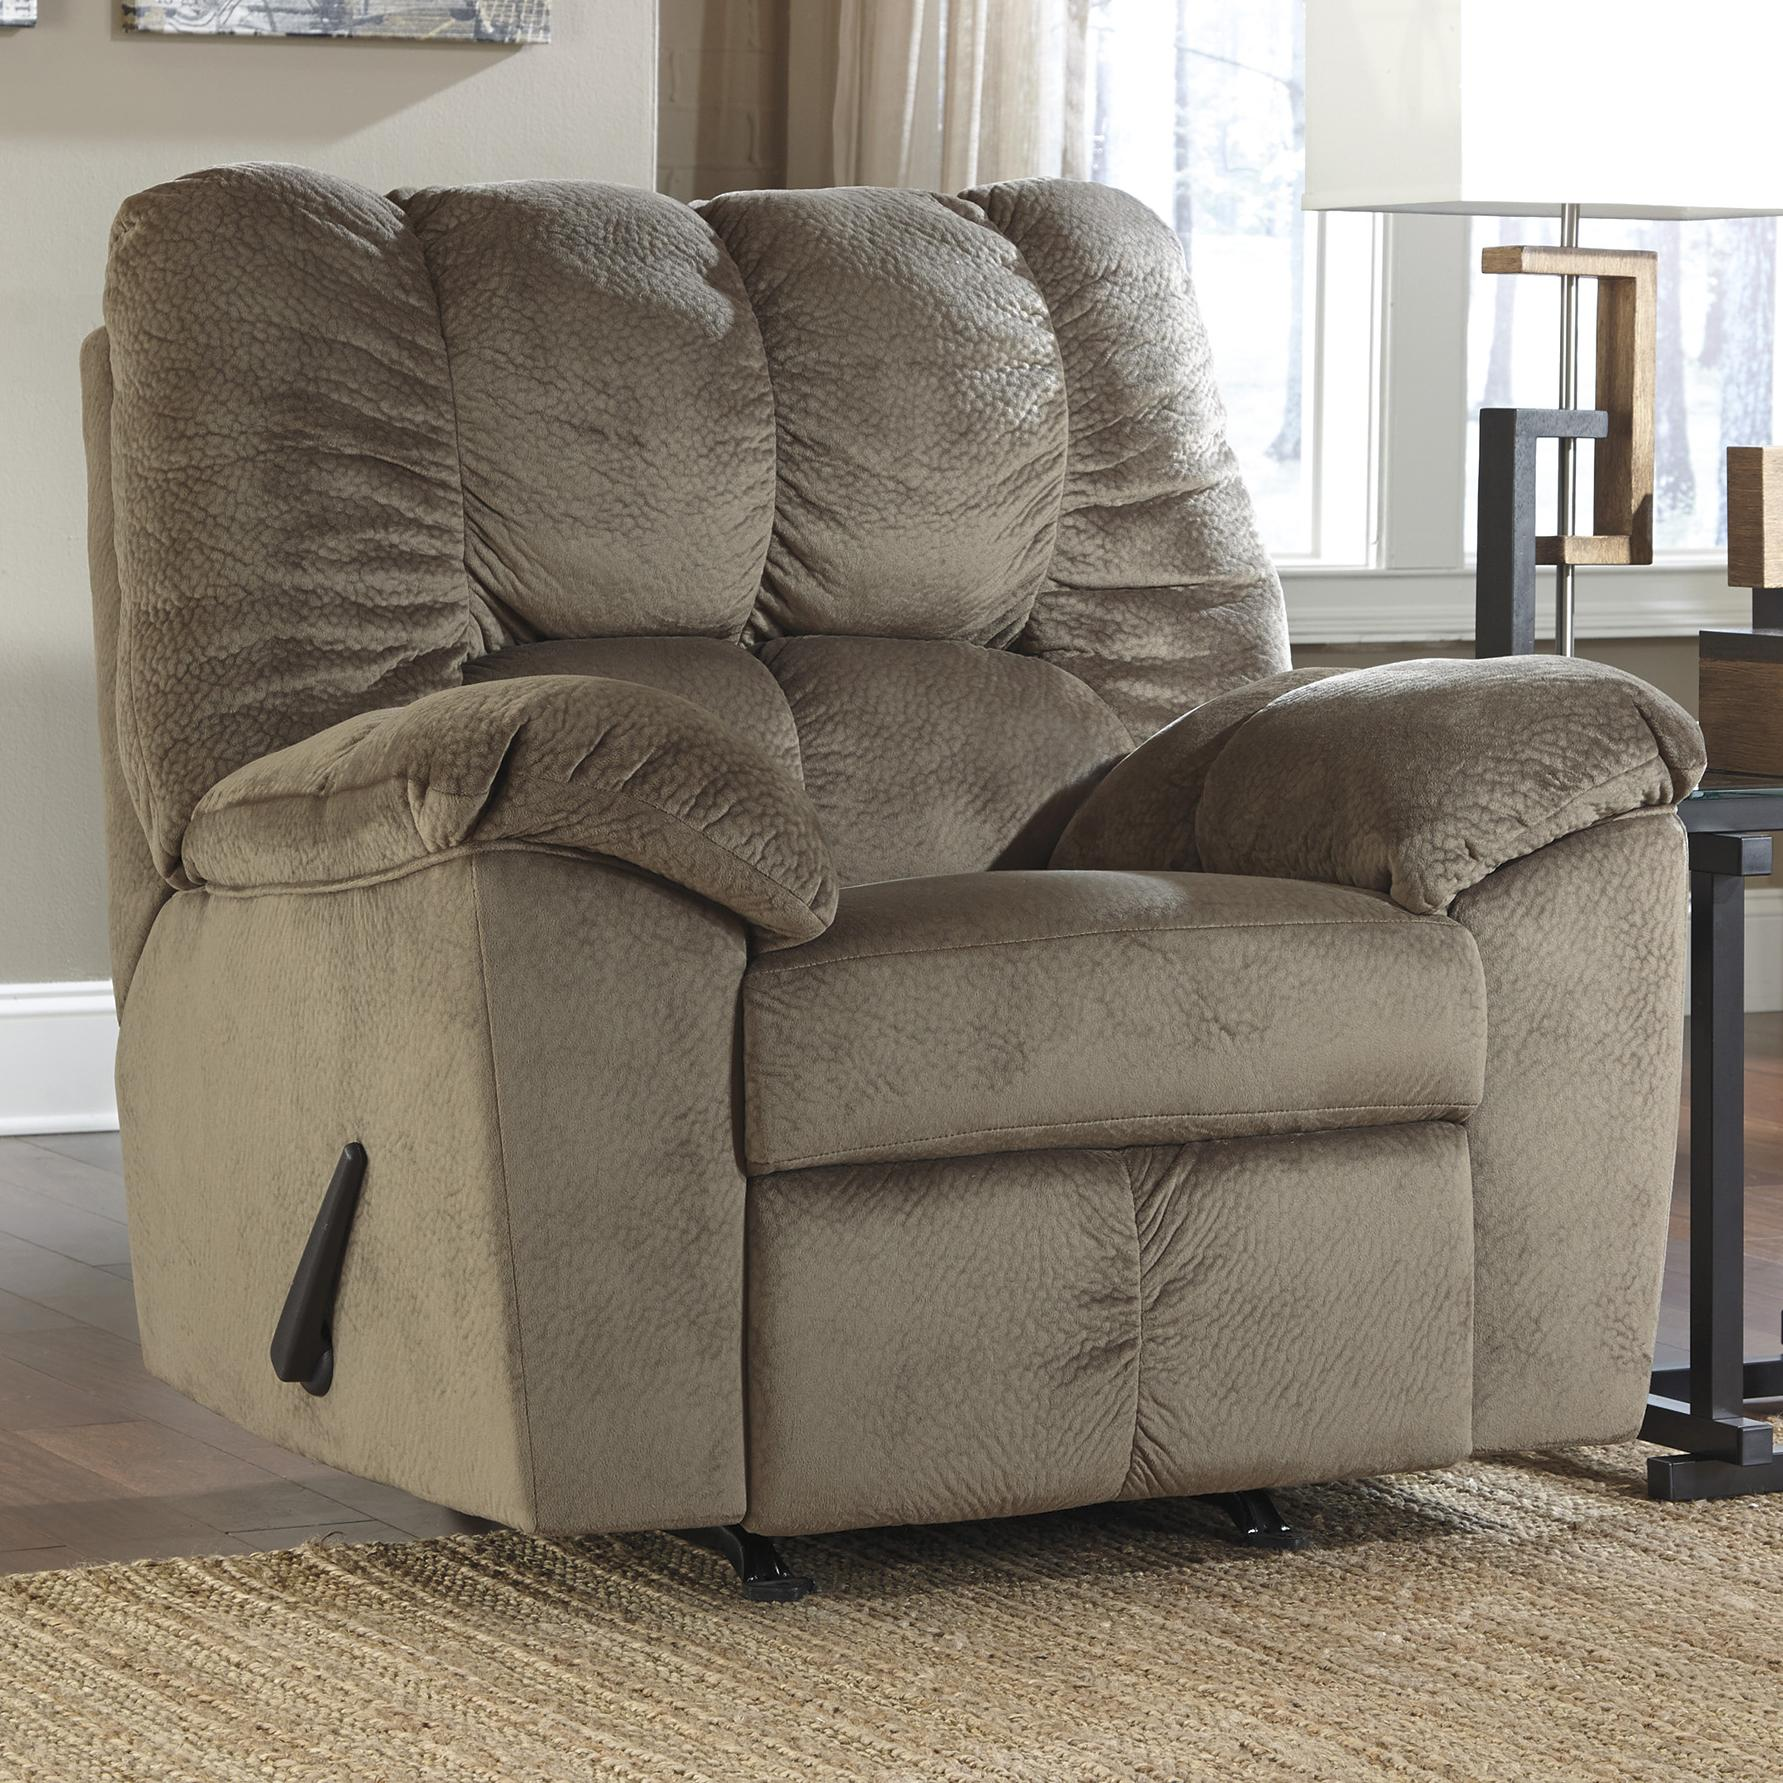 Signature Design by Ashley Julson - Dune Rocker Recliner - Item Number: 2660125